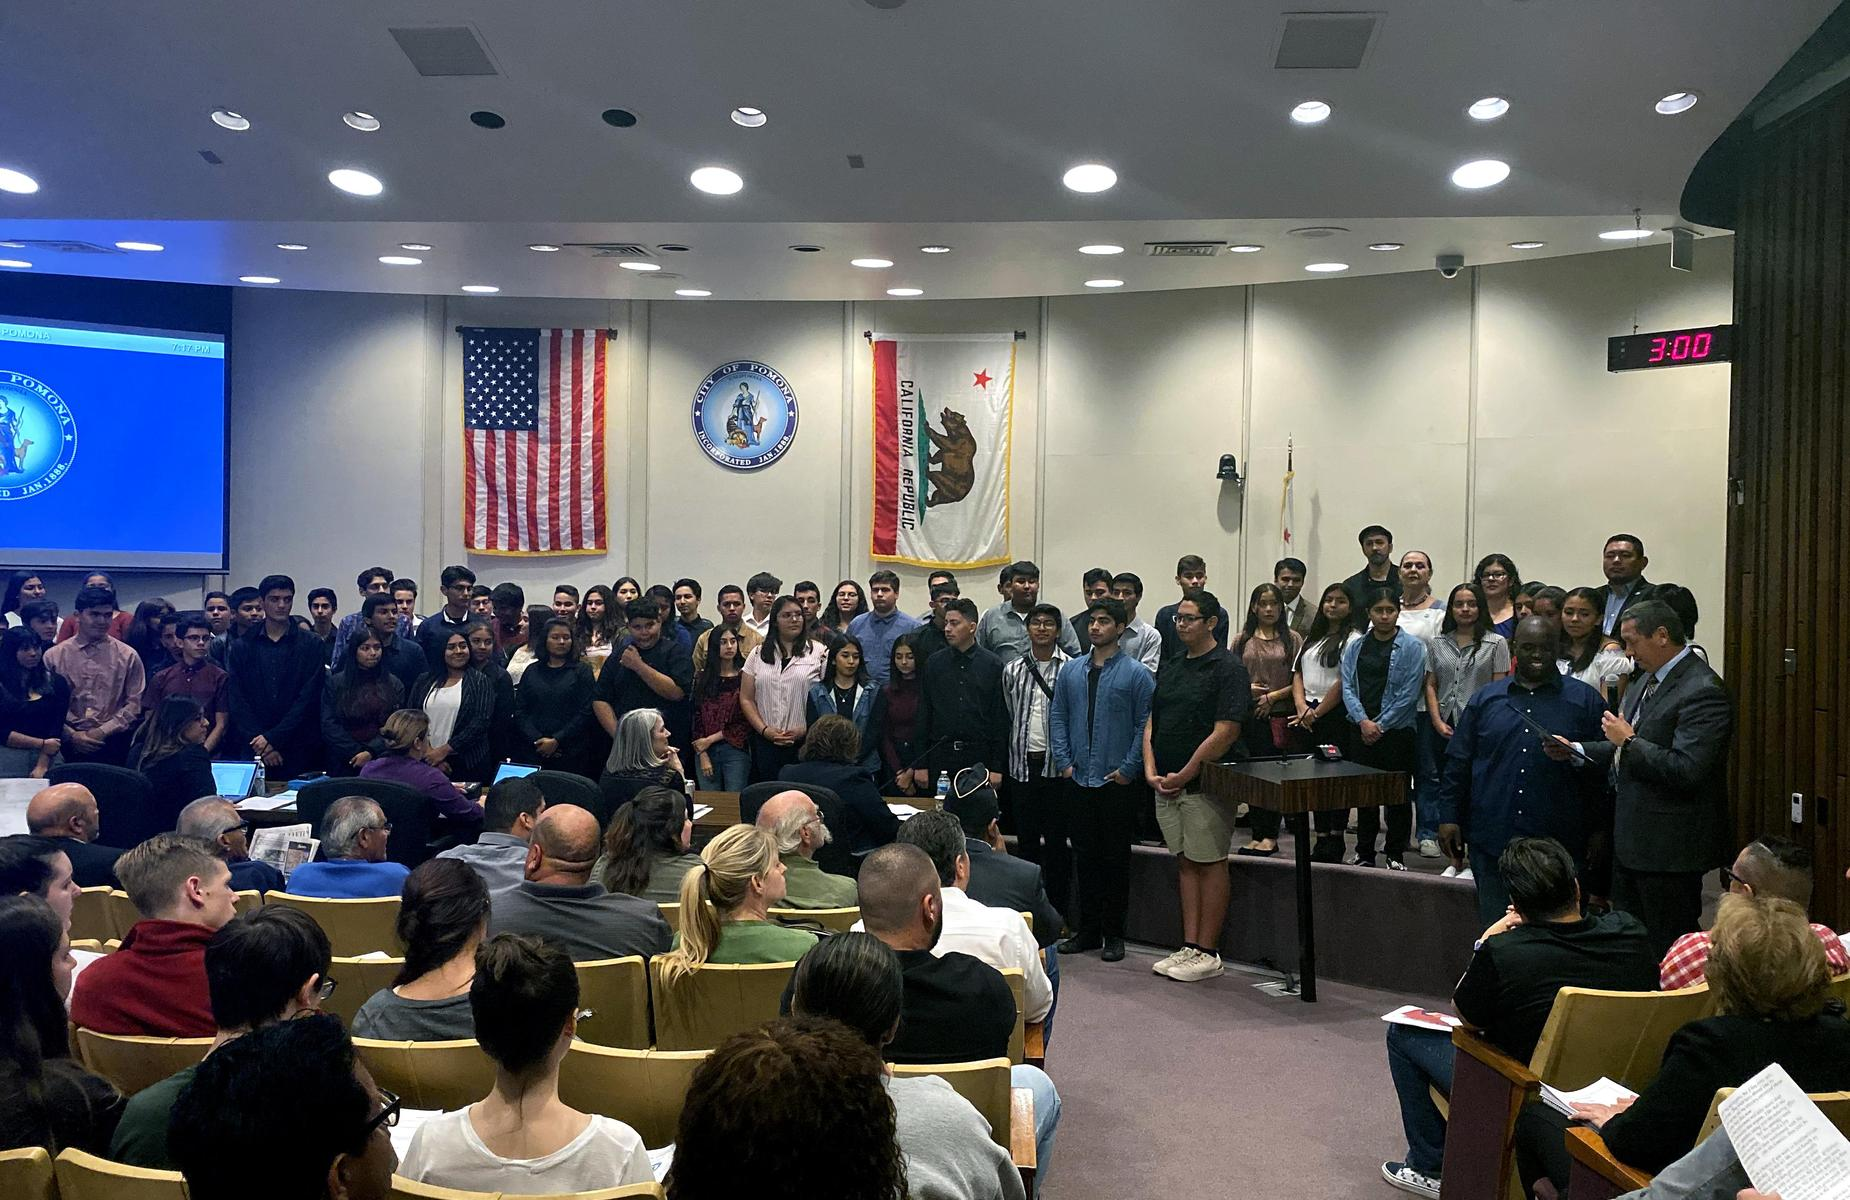 We are #proud of the @GareyHighPUSD Marching Band for their #musicalsuccess! The band was recognized by @CityofPomona for their amazing #award-winning season! Congratulations to Music Director Anthony Bonner for your leadership and enormous success! #proud2bepusd #GOAT #Pomona